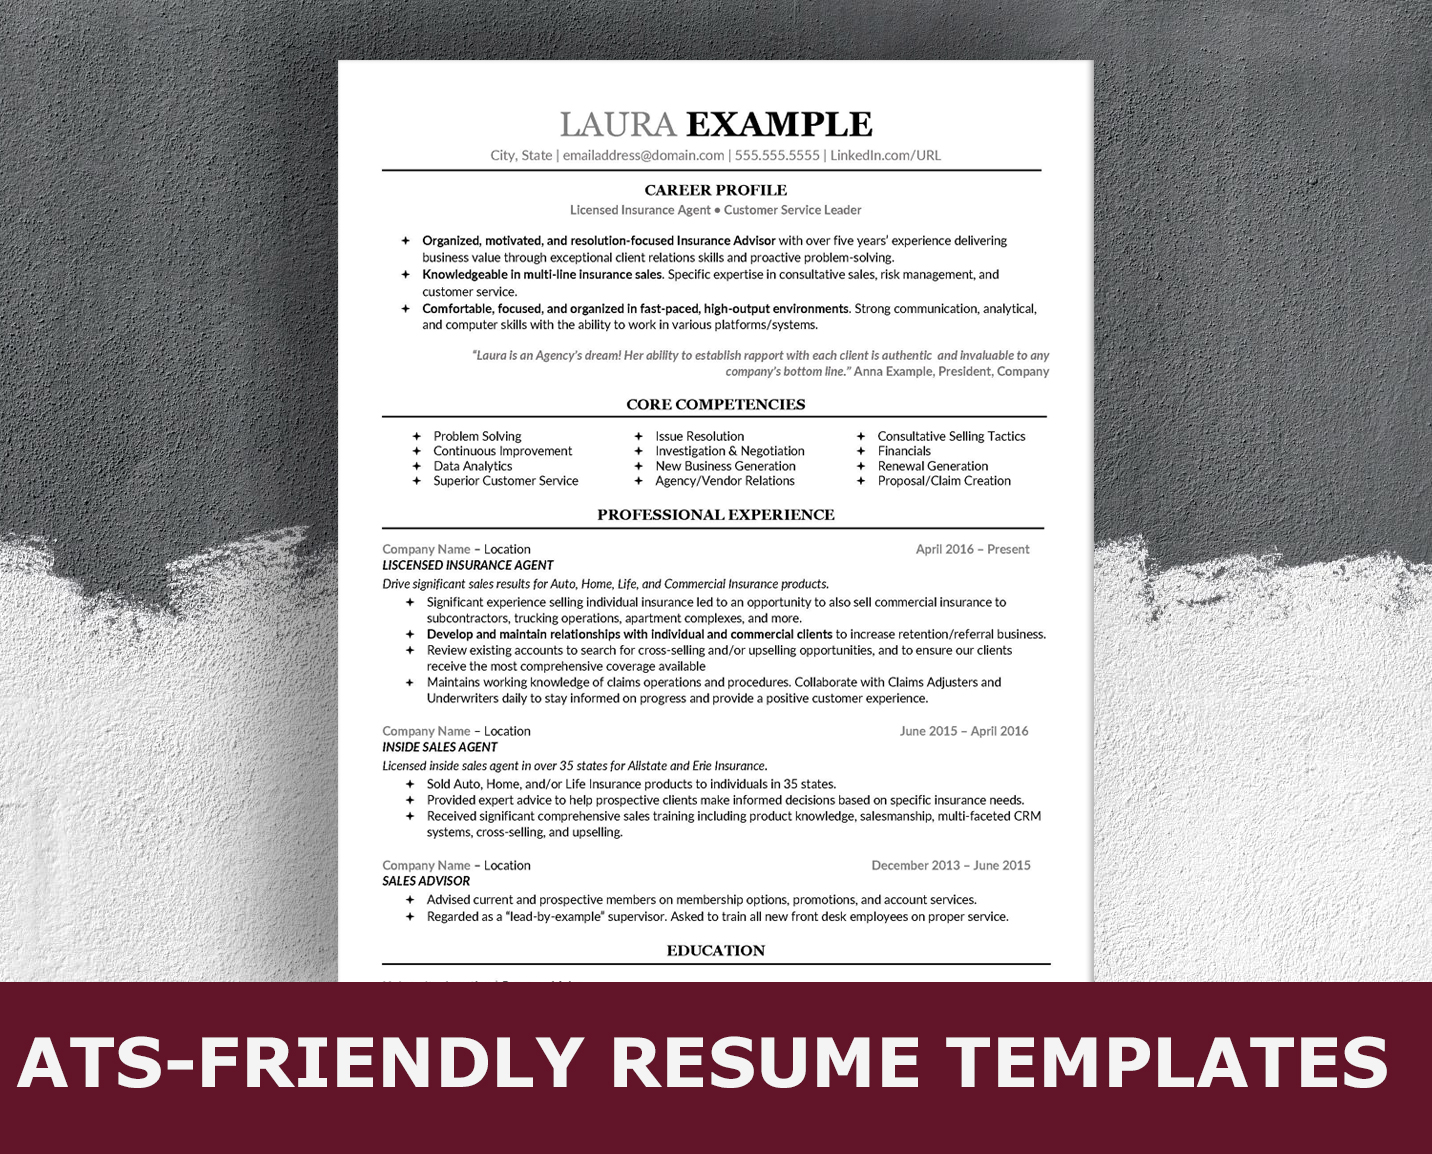 Ats Friendly Resume Format from images.squarespace-cdn.com